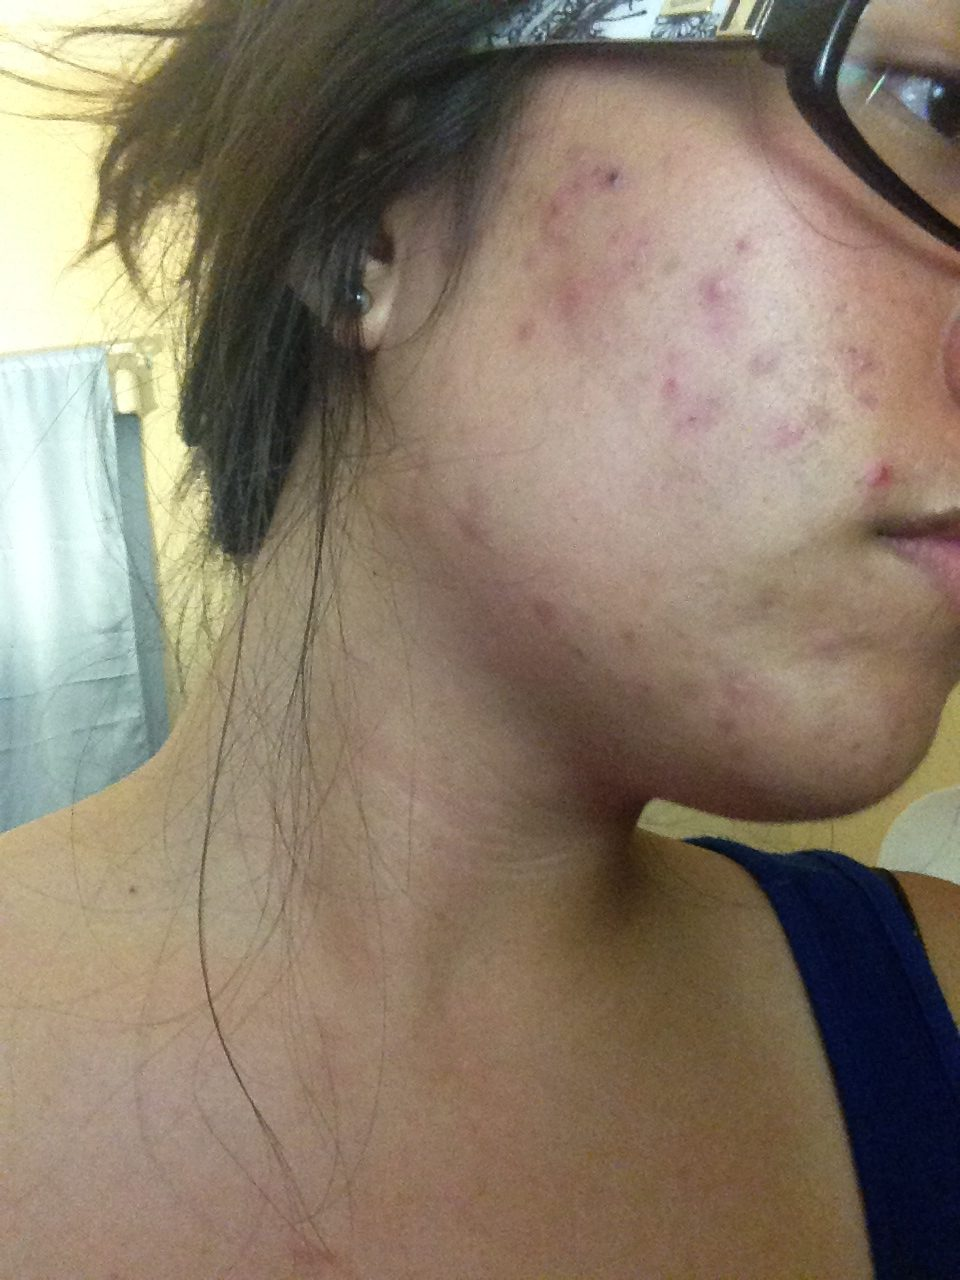 July 10th, 2014: Had my fellow esthetician treat my skin (with the spa products I didn't know were causing my allergic reaction). Seemed better temporarily.